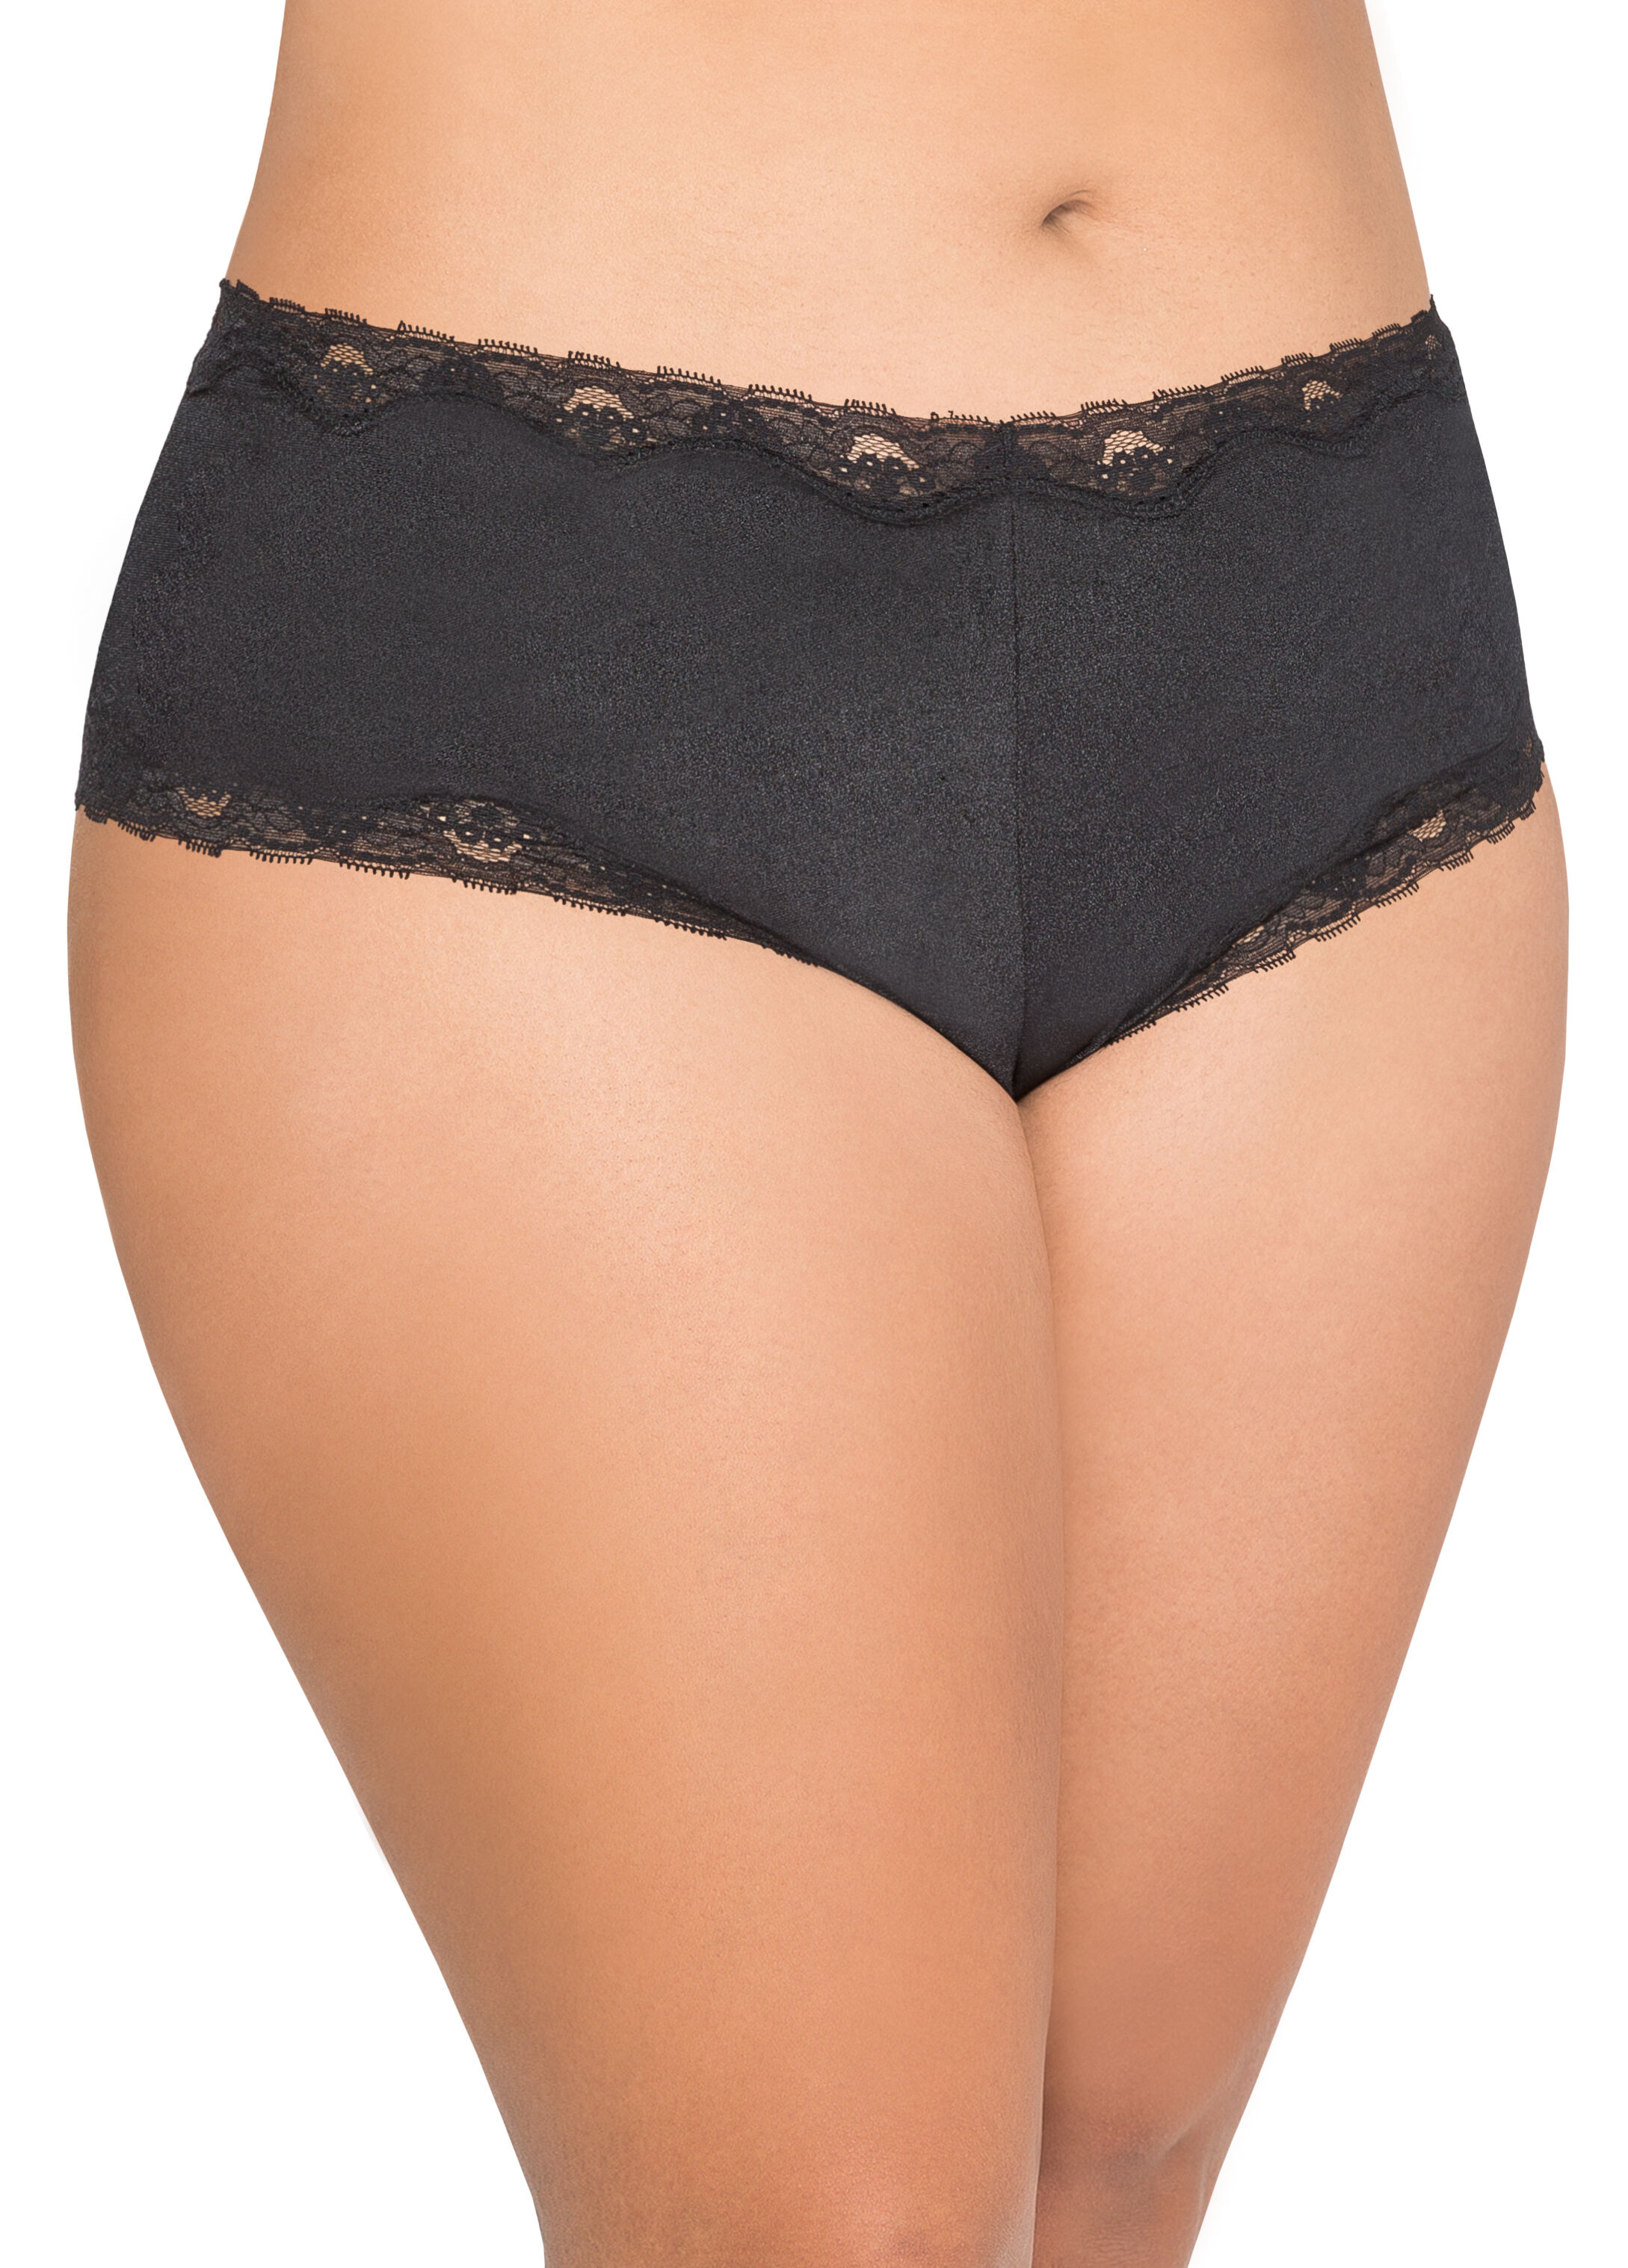 Velvet Hot Short Boyleg Panty